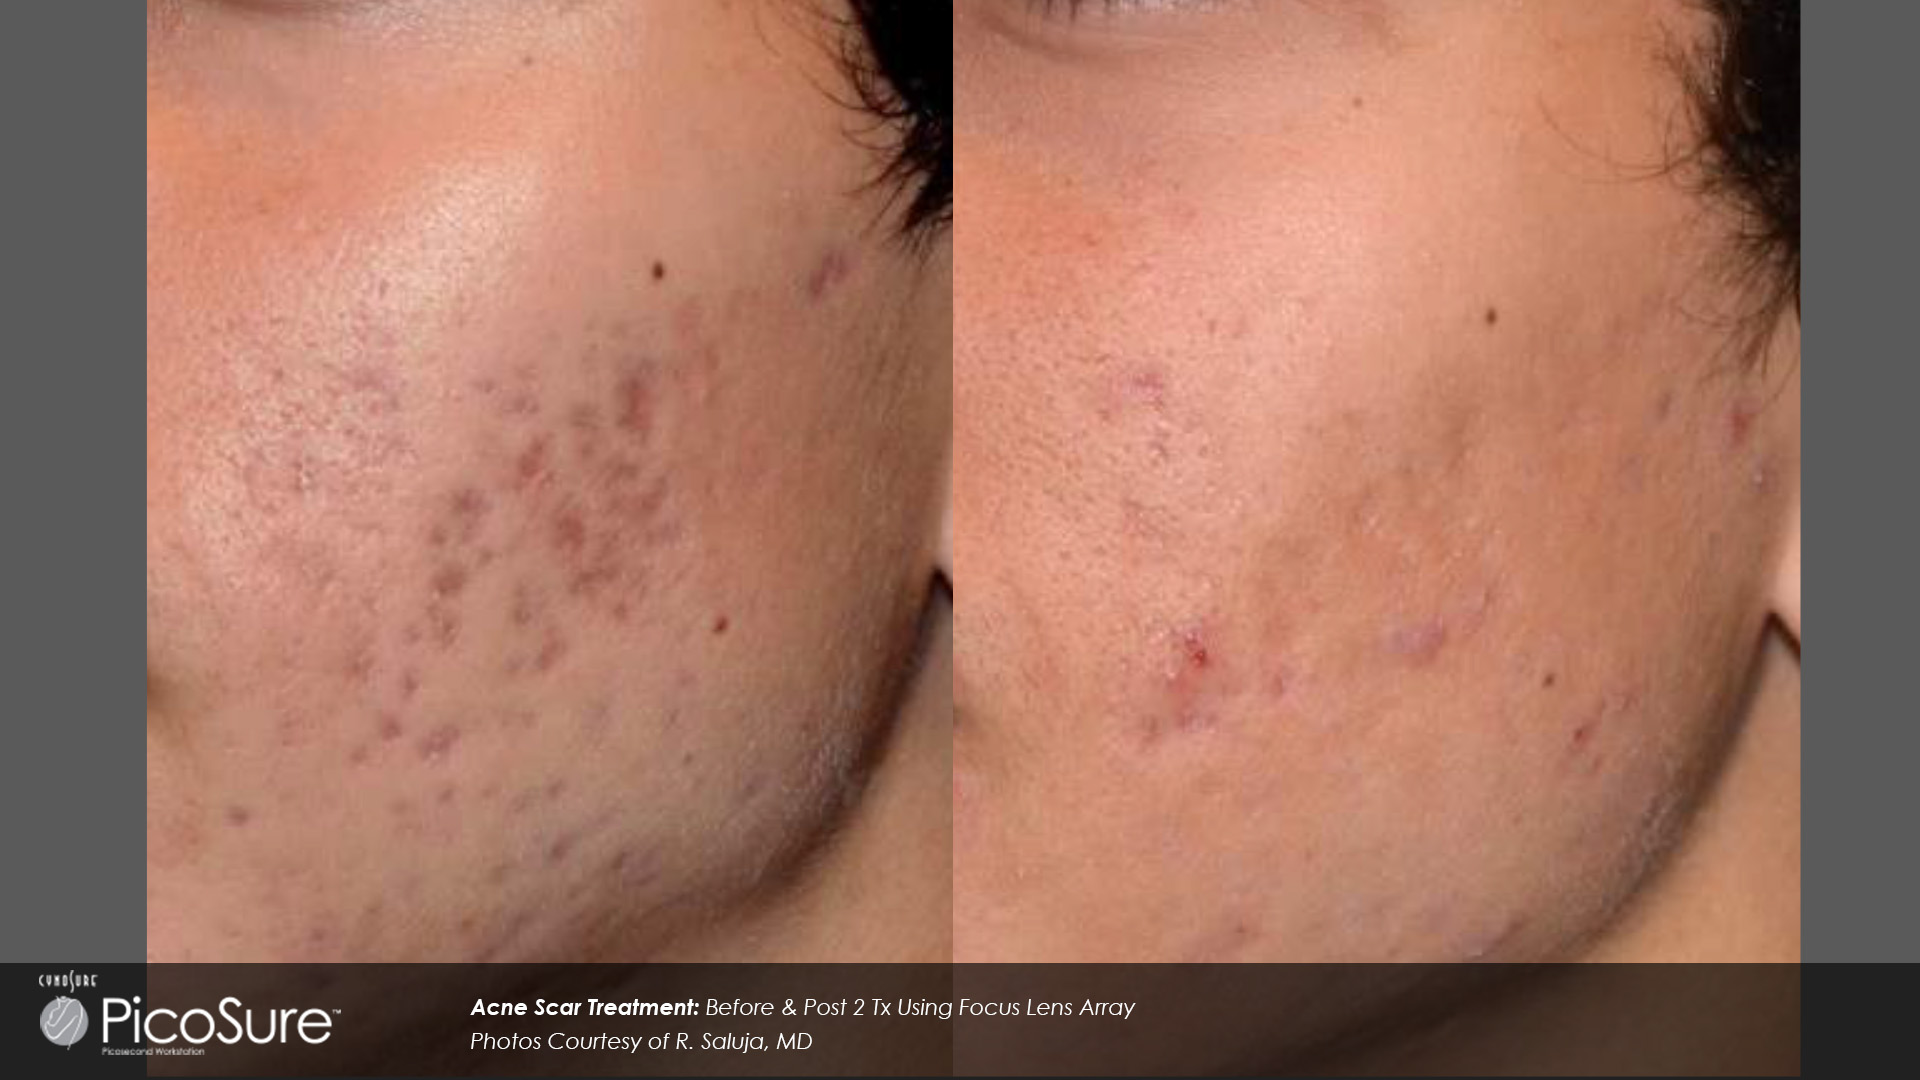 Close-up on facial skin showing the acne treatment effects of BA PicoSure